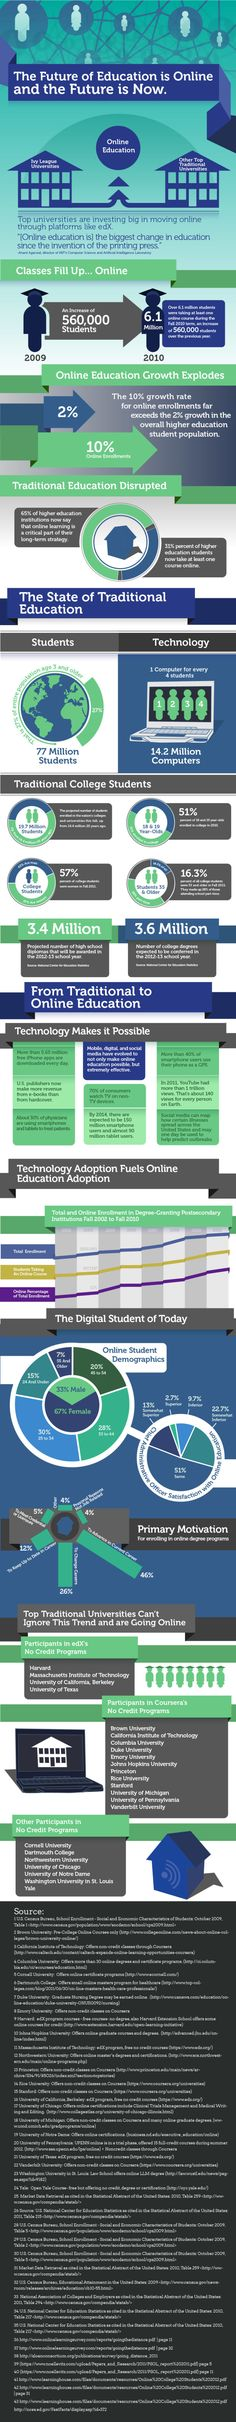 A Visual Guide To Online Learning - Edudemic